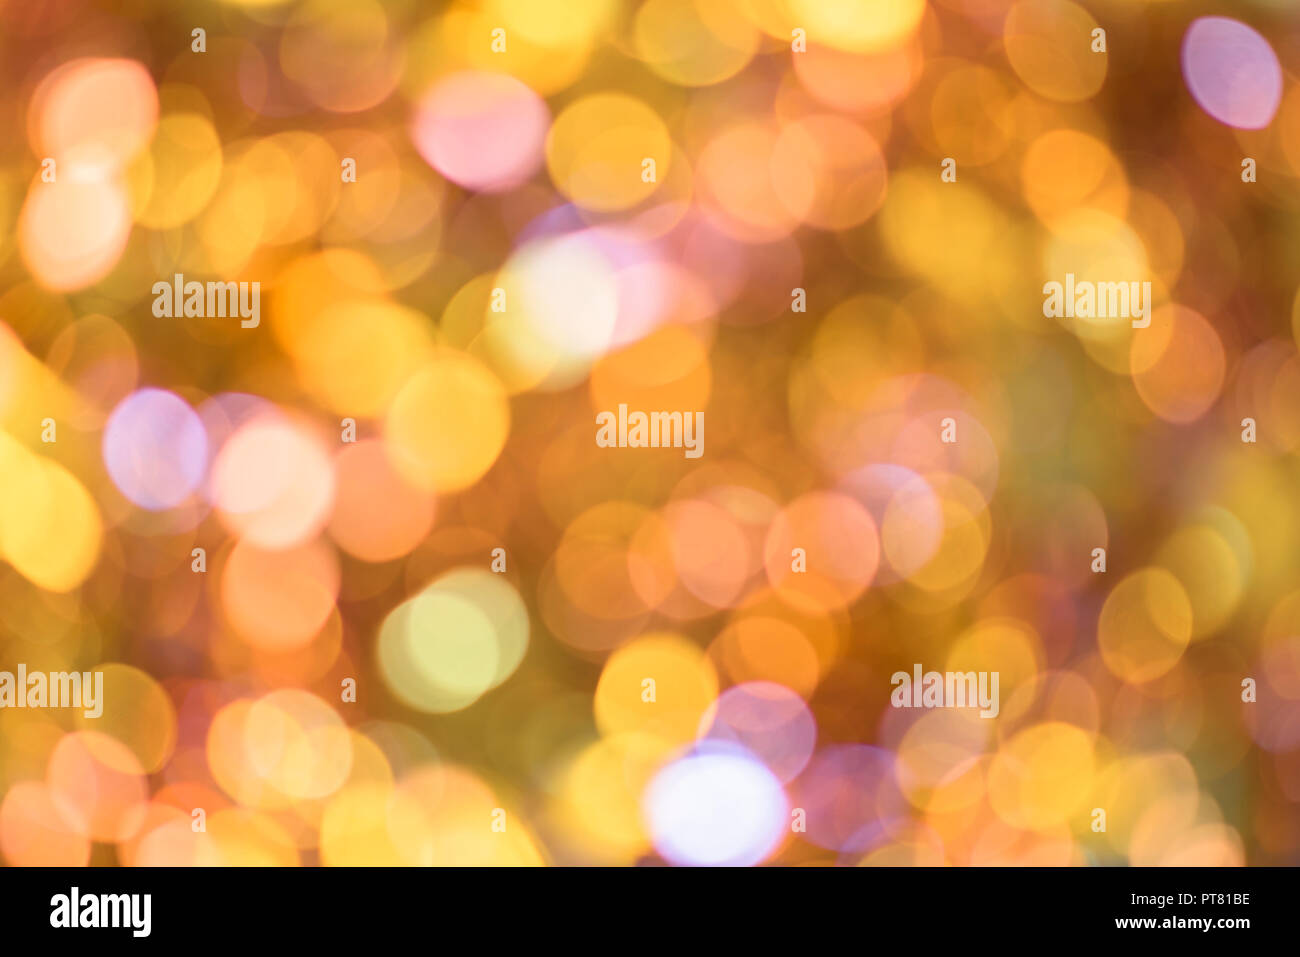 Background texture full of unsharp blurring golden yellow and cute pink shining bokeh lens aesthetic aberration effect. - Stock Image